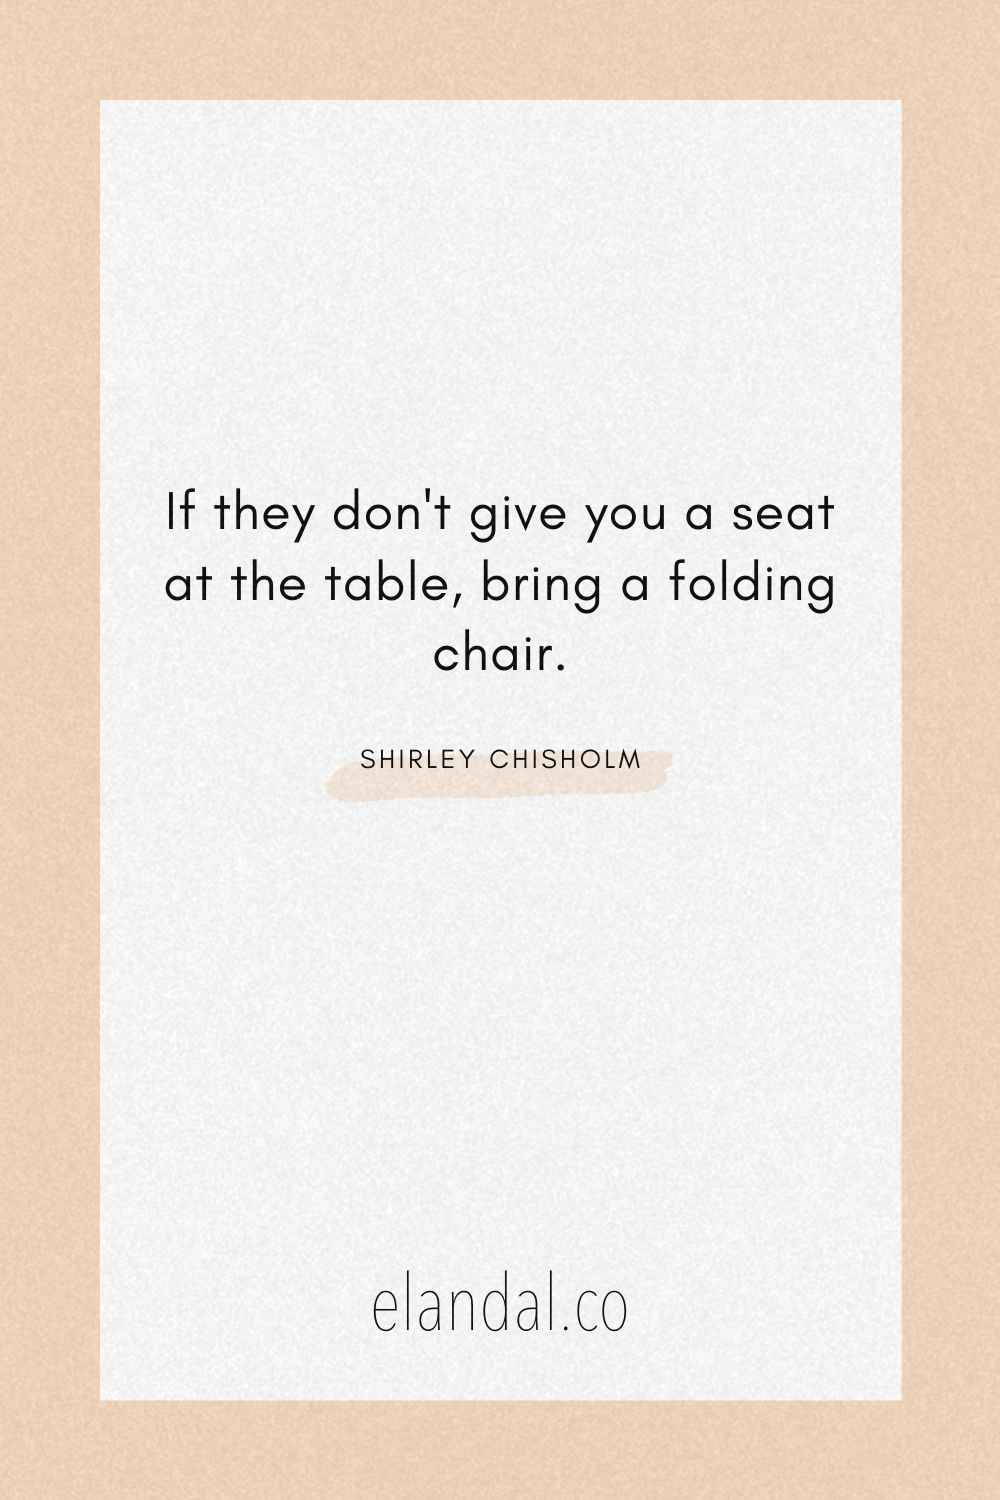 Shirley Chisholm Quote Bring Your Own Chair To The Table In 2020 Babe Quotes Boss Babe Quotes Quotes